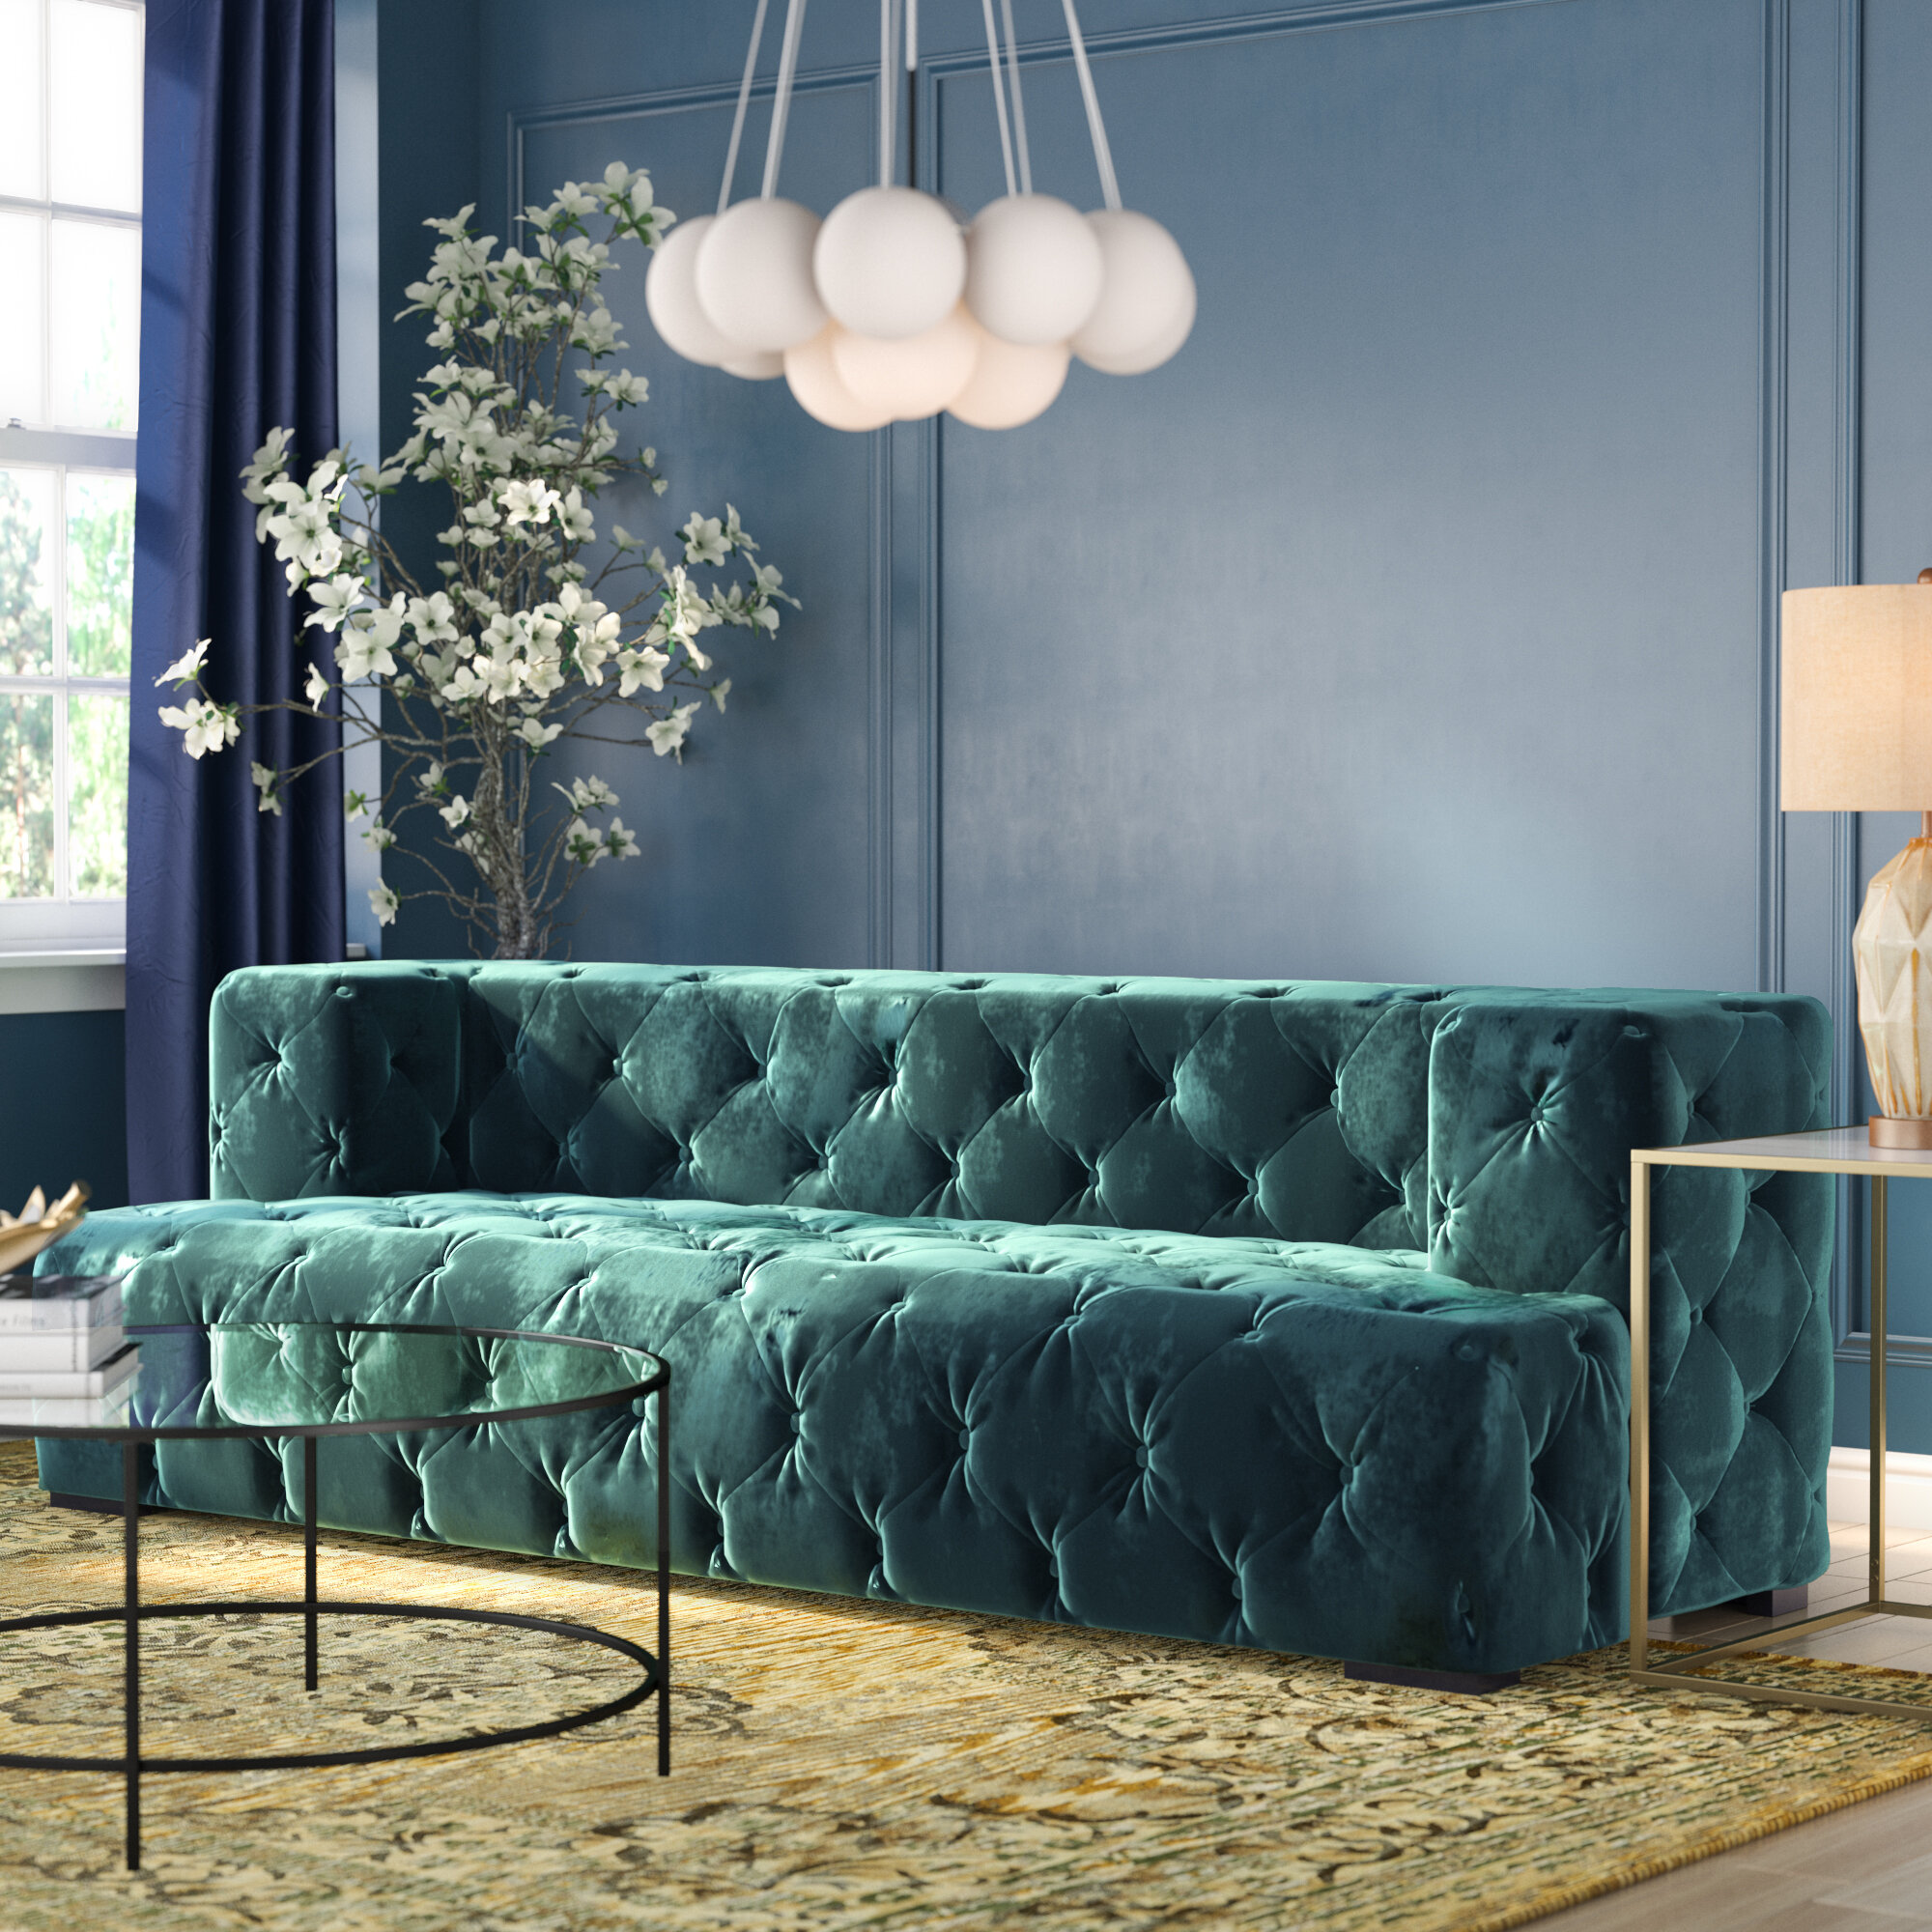 Willa Arlo Interiors Jasper Chesterfield Sofa Reviews Wayfair